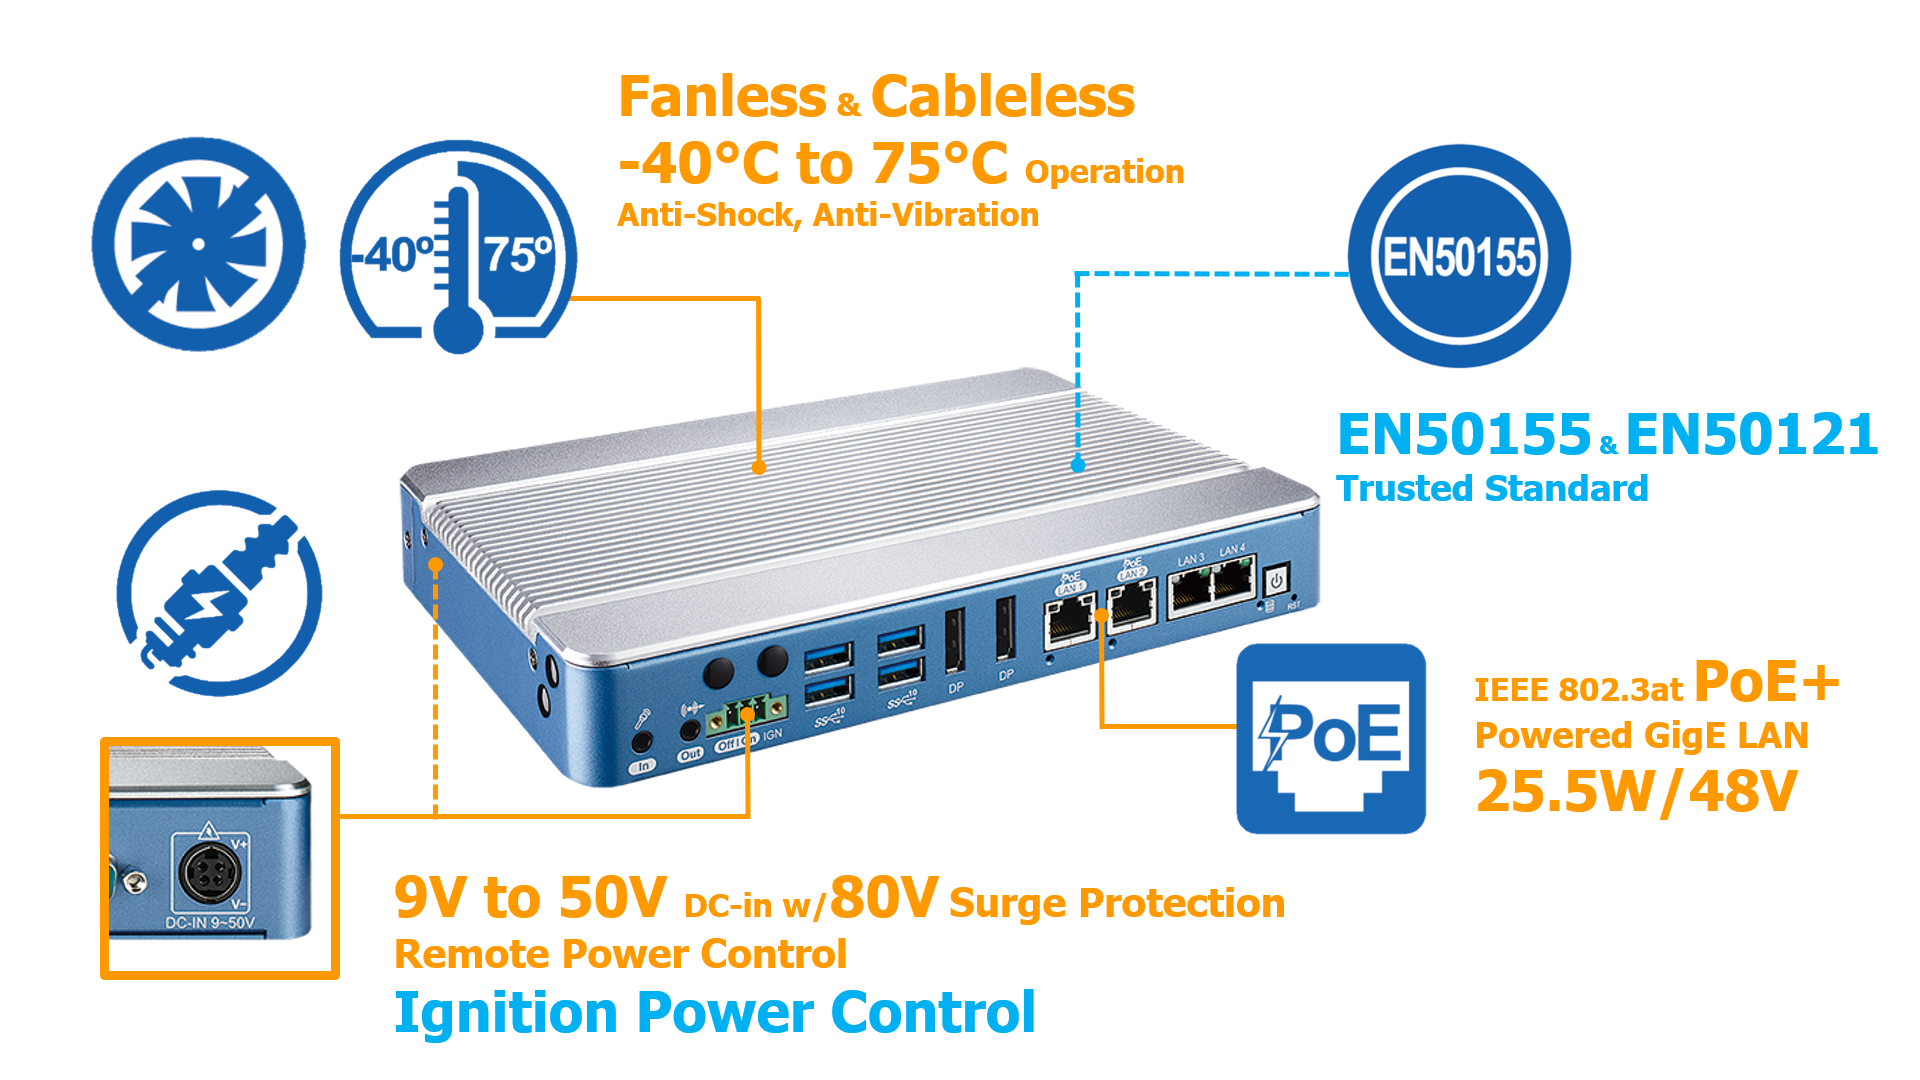 Vecow ABP-3000 features rugged reliability